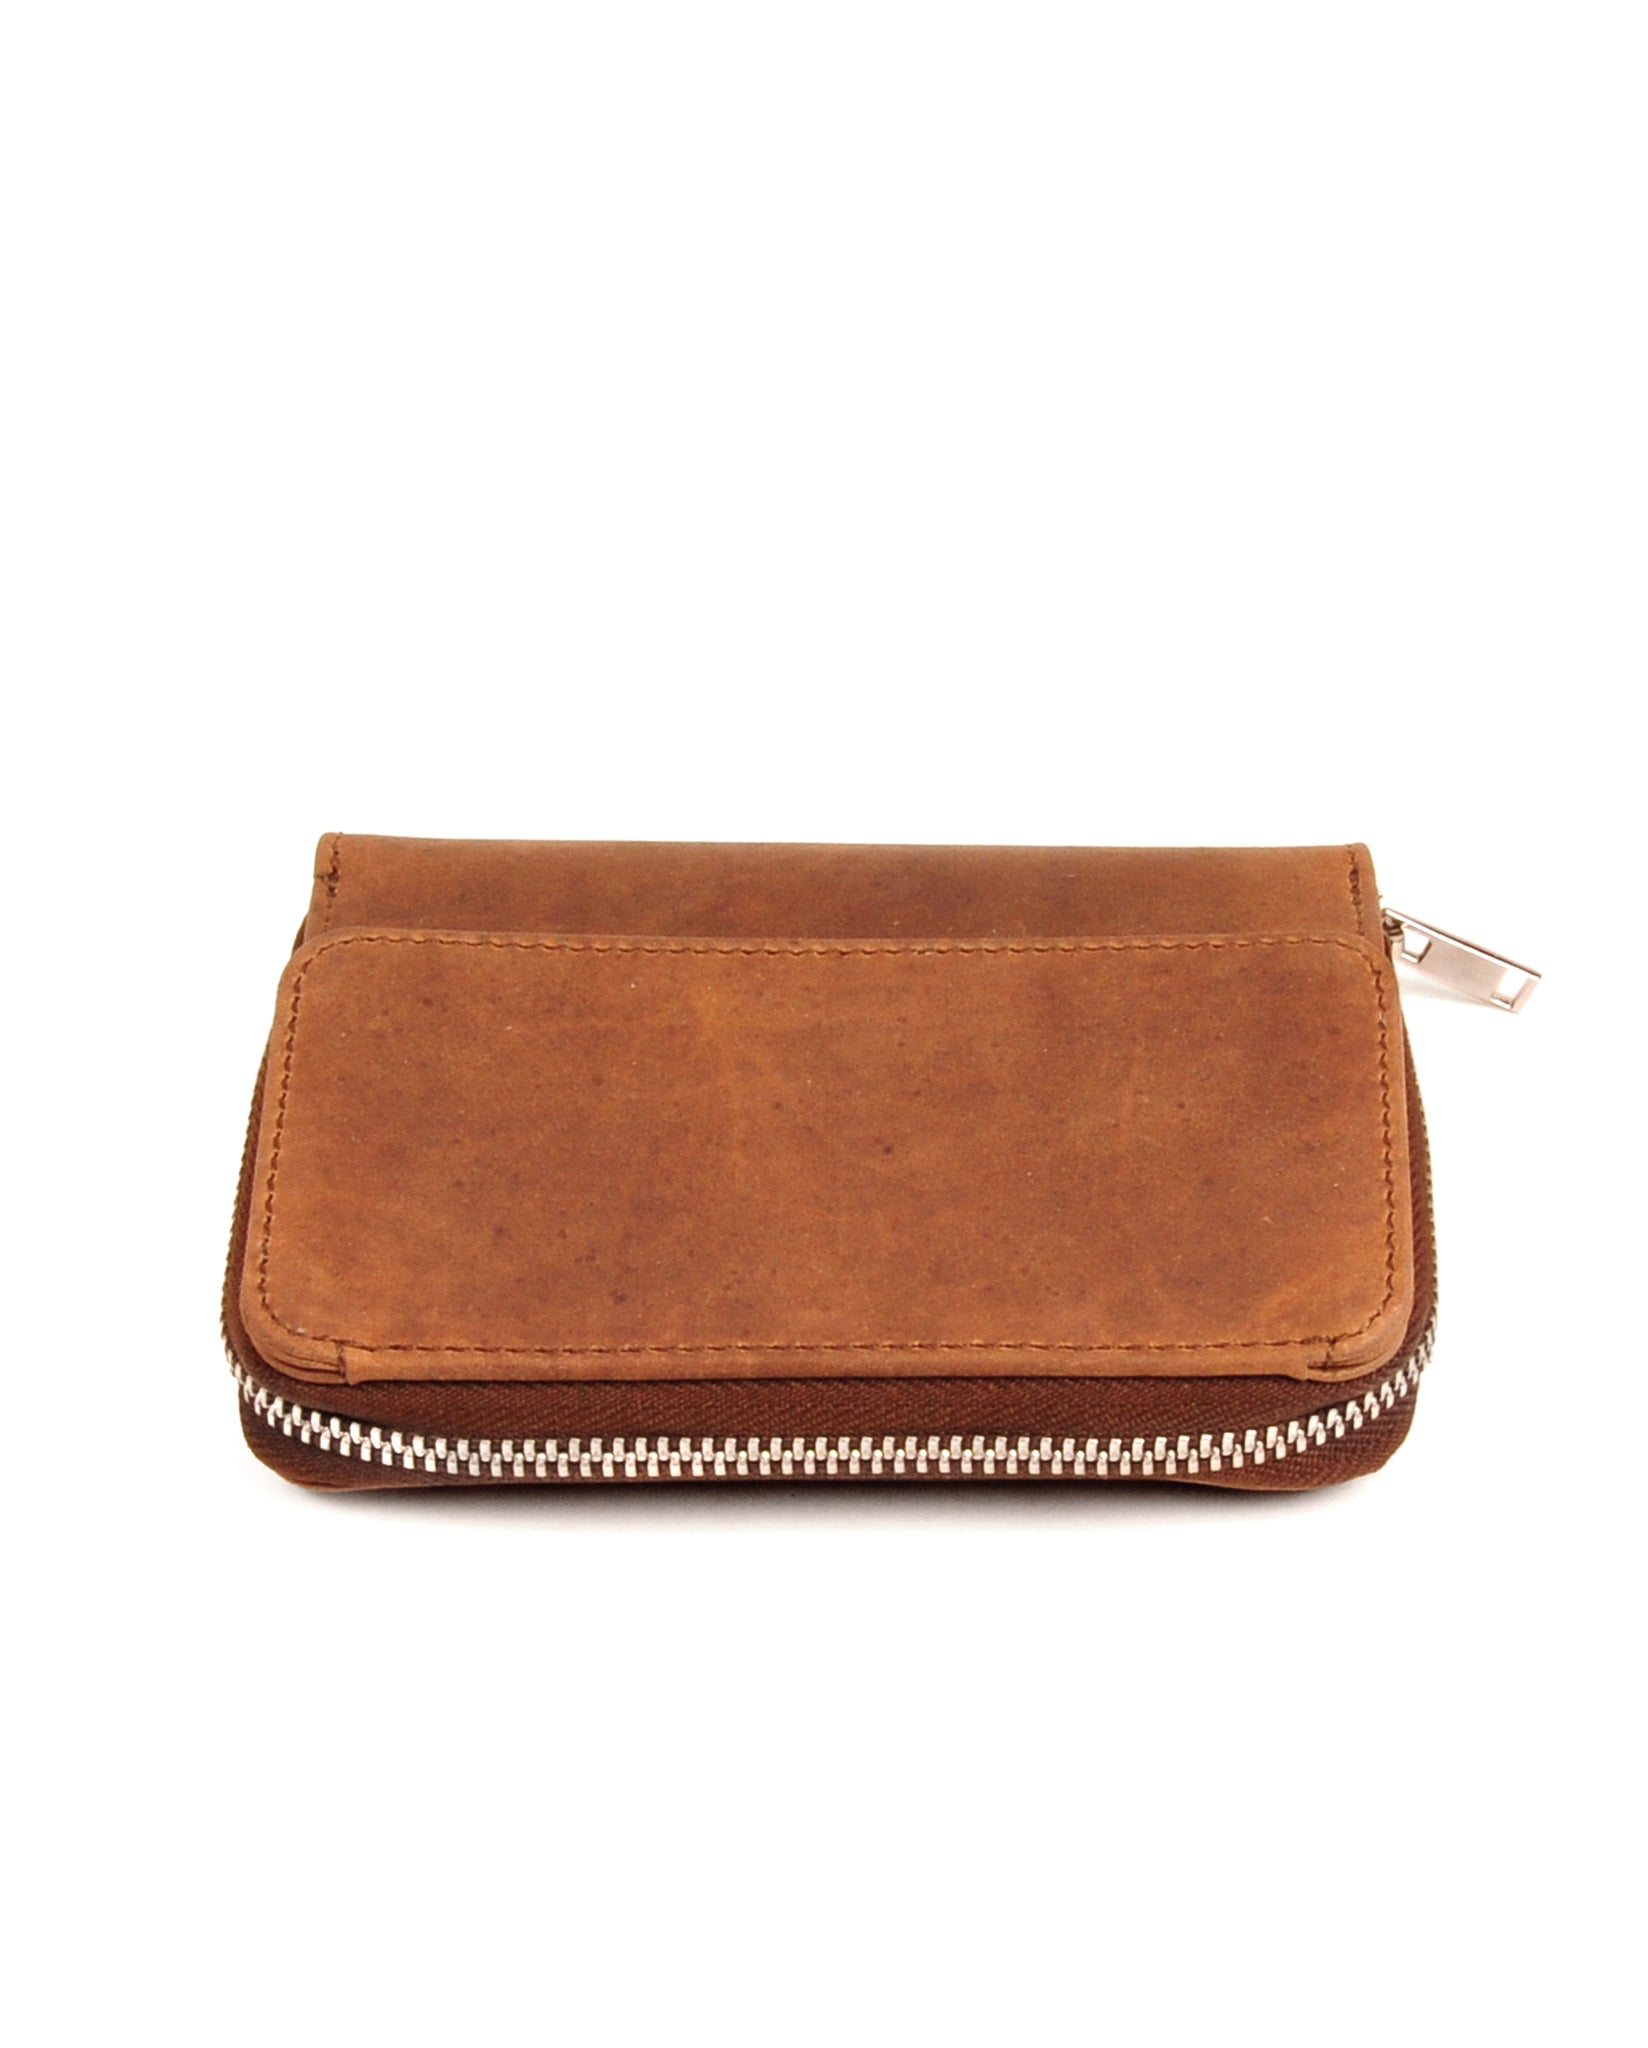 dothebag accessories wallet zip flap